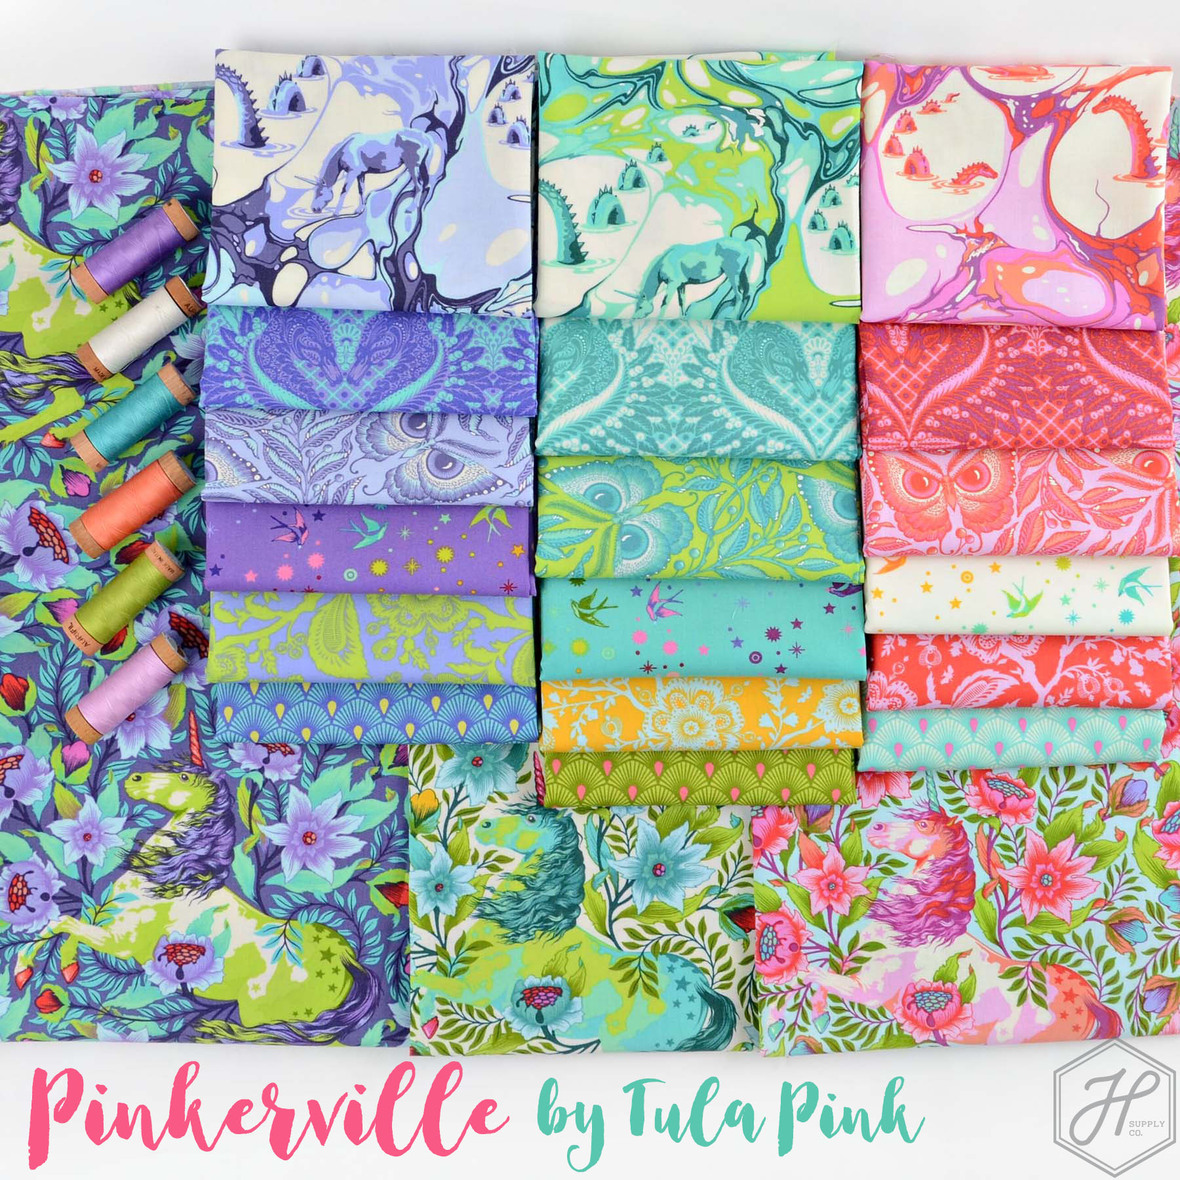 Pinkerville Fabric Poster Tula Pink at Hawthorne Supply Co1